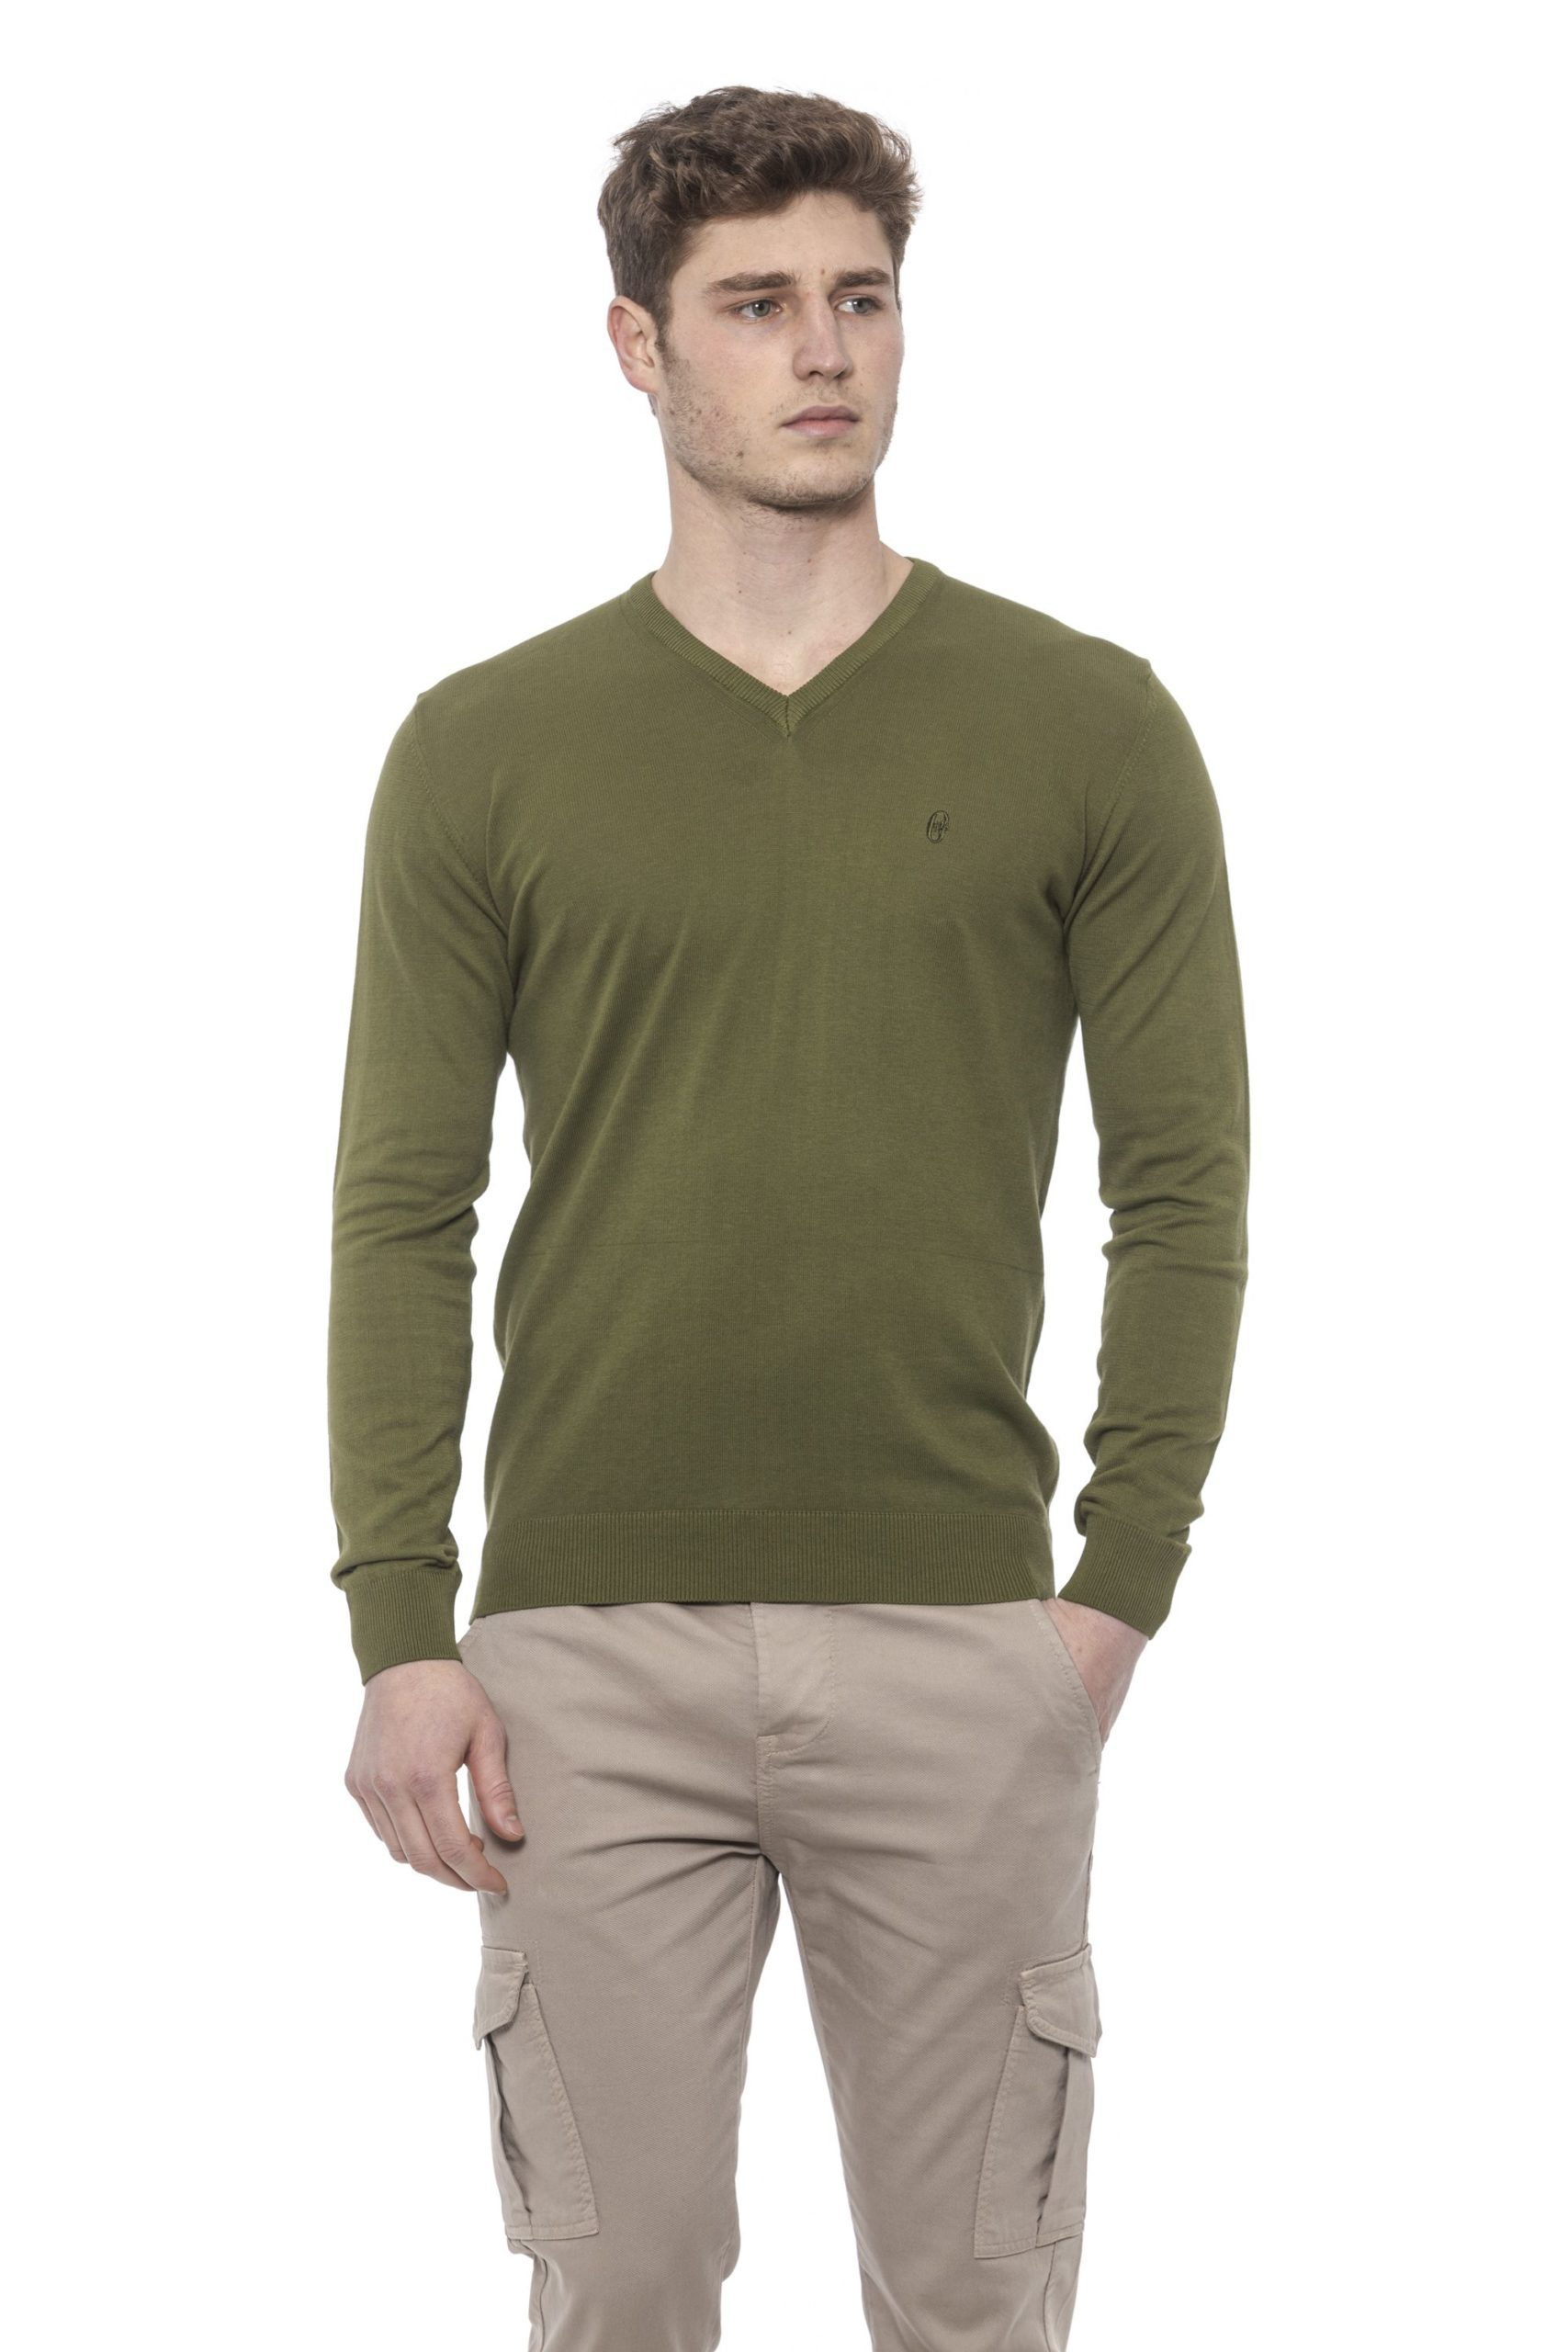 Conte of Florence Men's Sweater Green CO1376422 - S